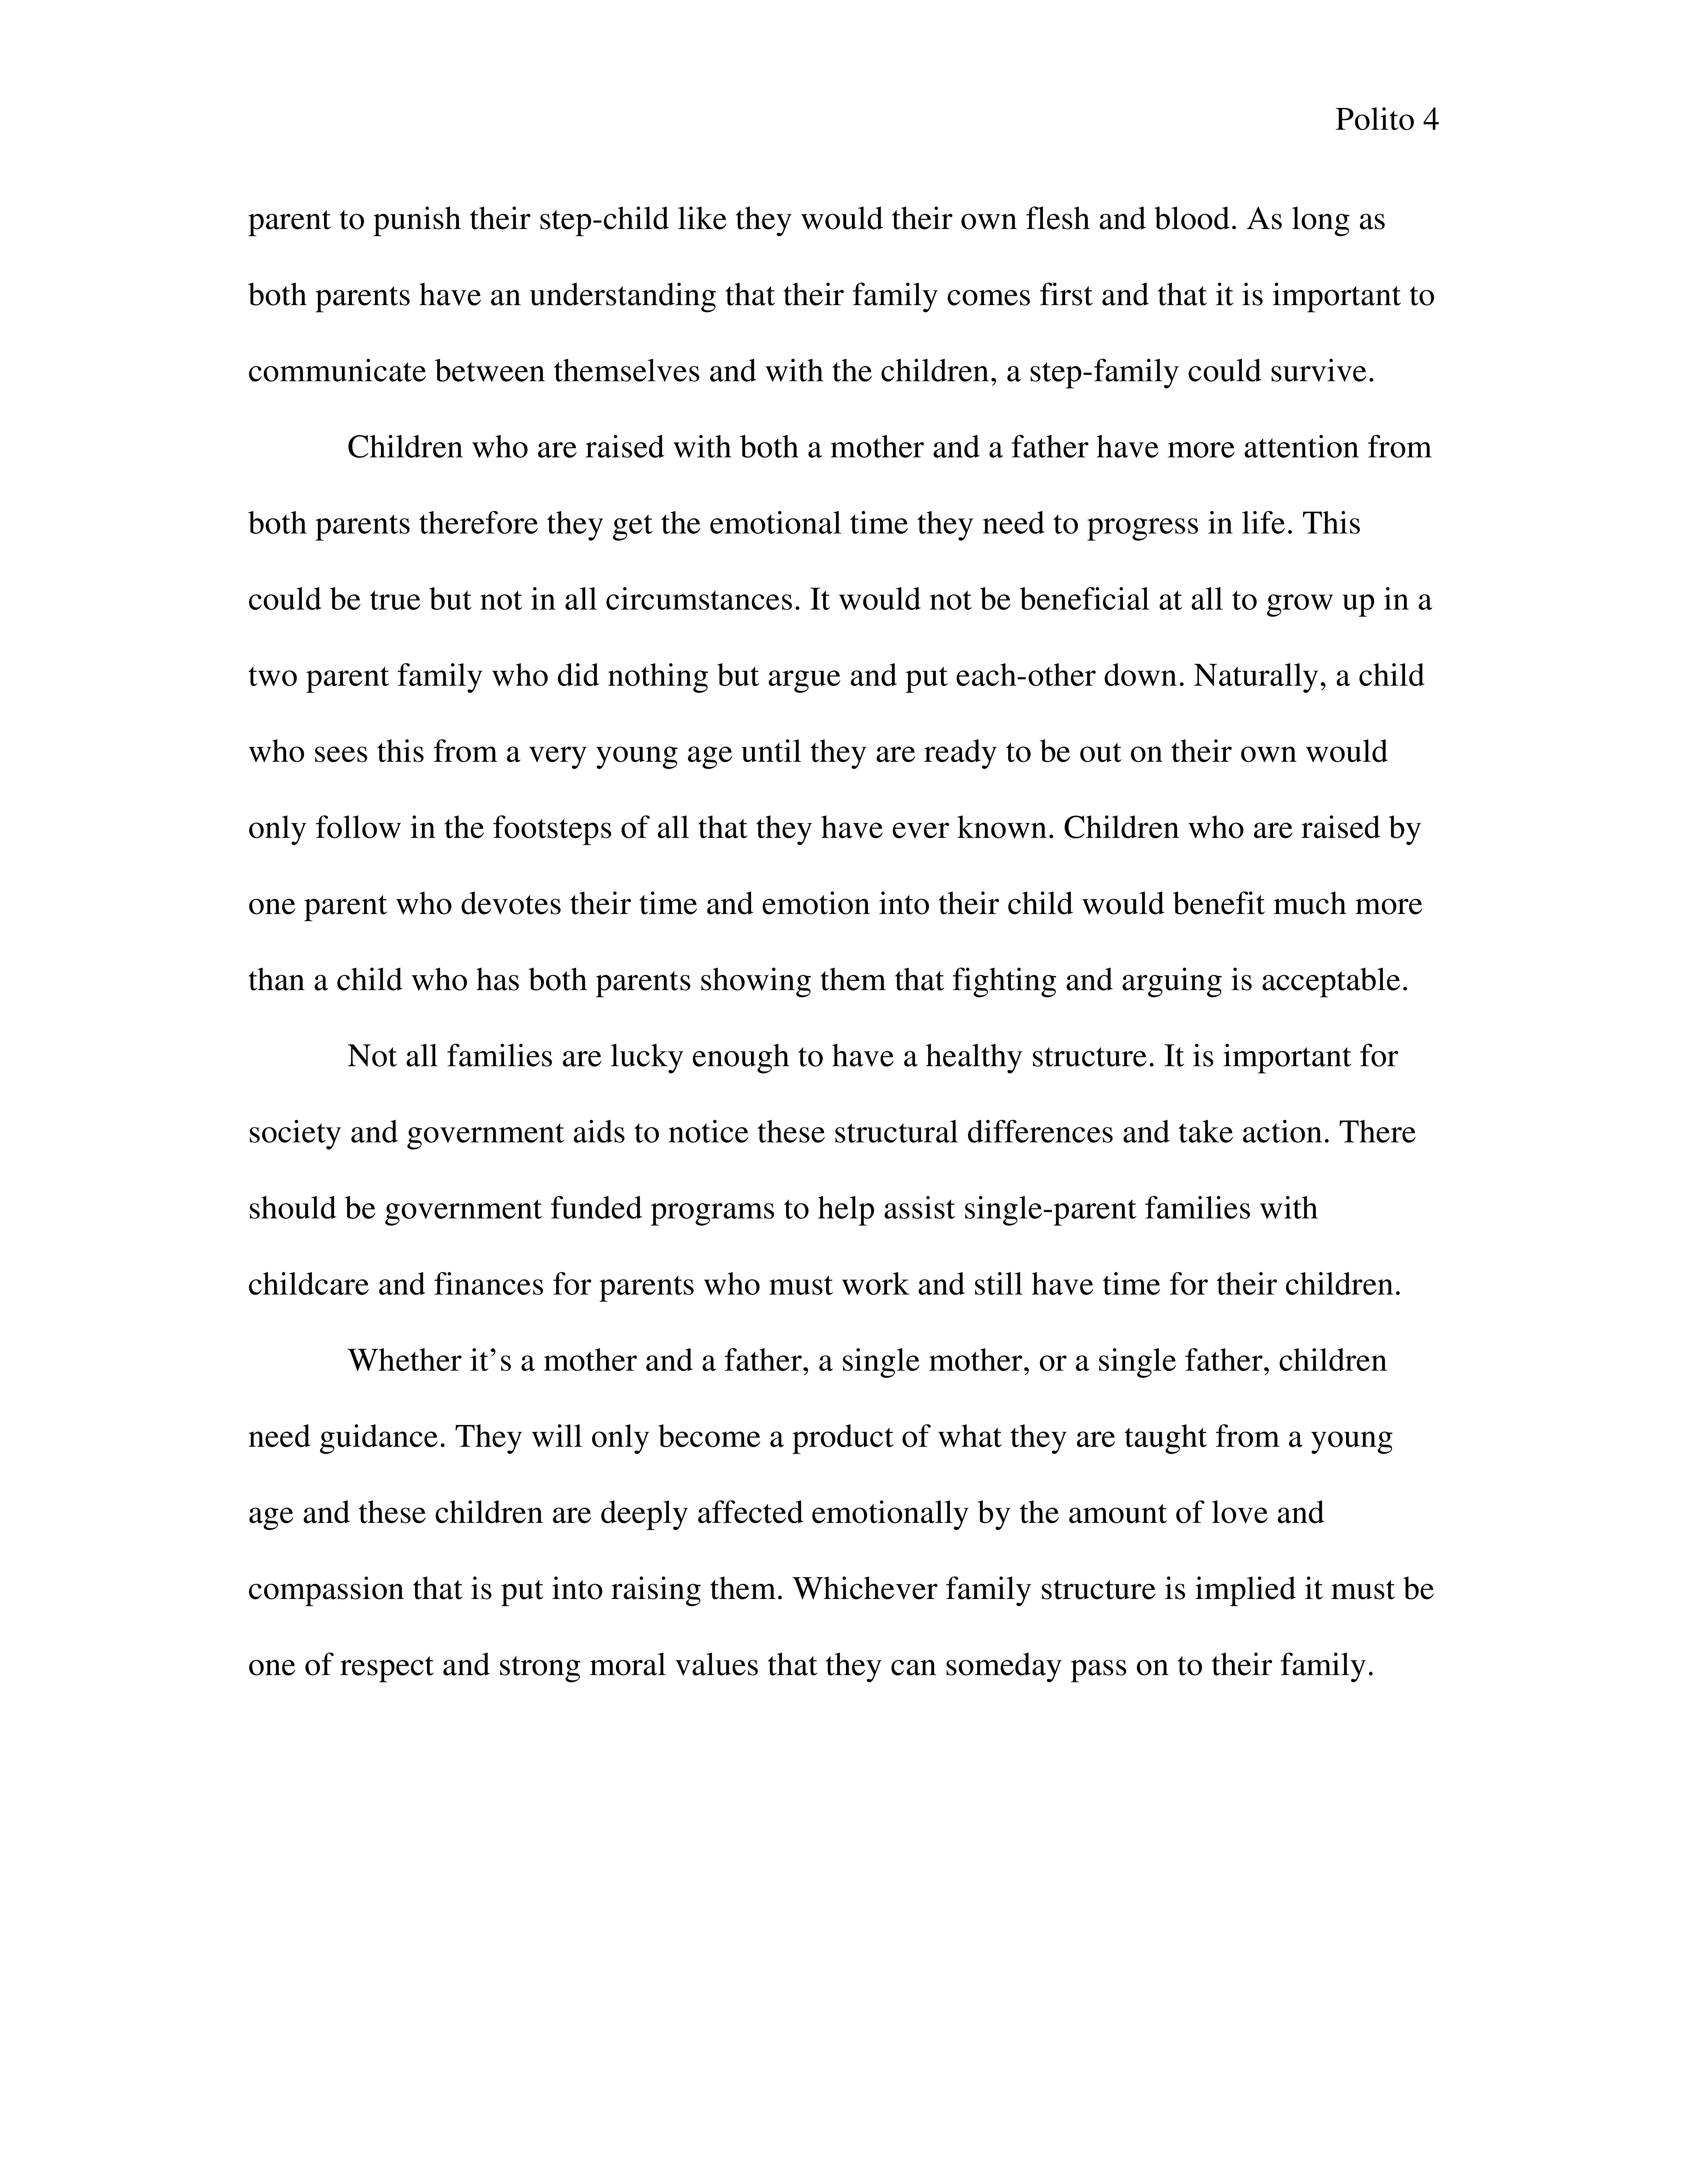 012 Essay Example Expository Sample 2 Impressive Samples Theme Examples High School For 7th Grade Full